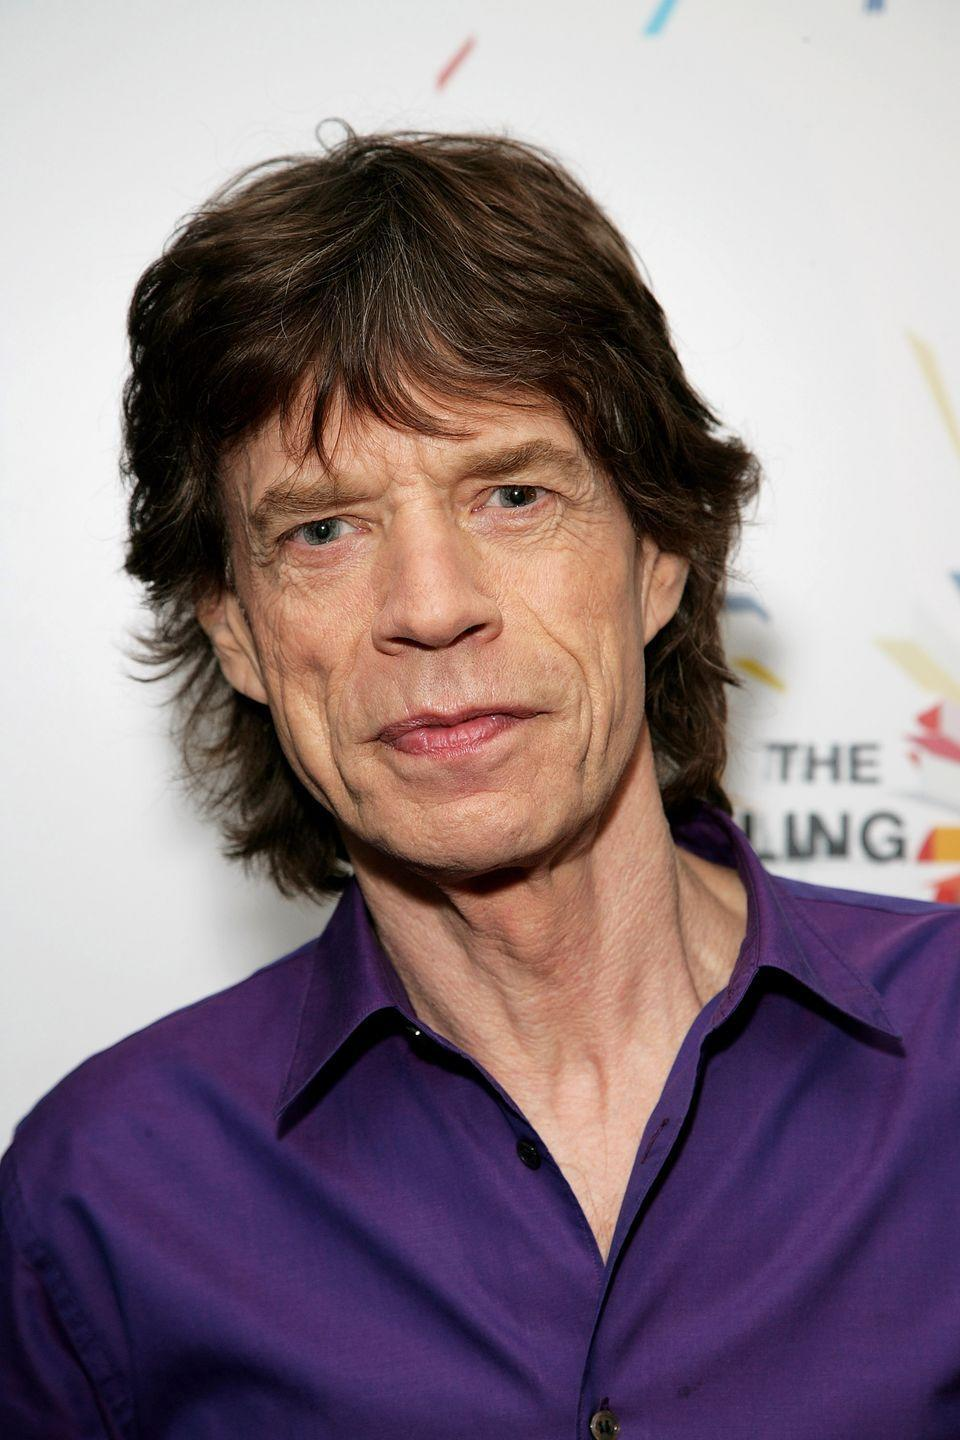 """<p>In 1982, Mick Jagger tried his hand at acting as one of the main characters in <em>Fitzcarraldo</em>. However, the movie had a lot of production delays due to its remote filming location that Jagger couldn't accommodate with his Rolling Stones tour. Because of his scheduling conflicts, <a href=""""https://www.nytimes.com/1982/10/10/movies/herzog-s-fitzcarraldo-a-spectacle.html"""" rel=""""nofollow noopener"""" target=""""_blank"""" data-ylk=""""slk:Jagger was cut"""" class=""""link rapid-noclick-resp"""">Jagger was cut</a> from the film. </p>"""